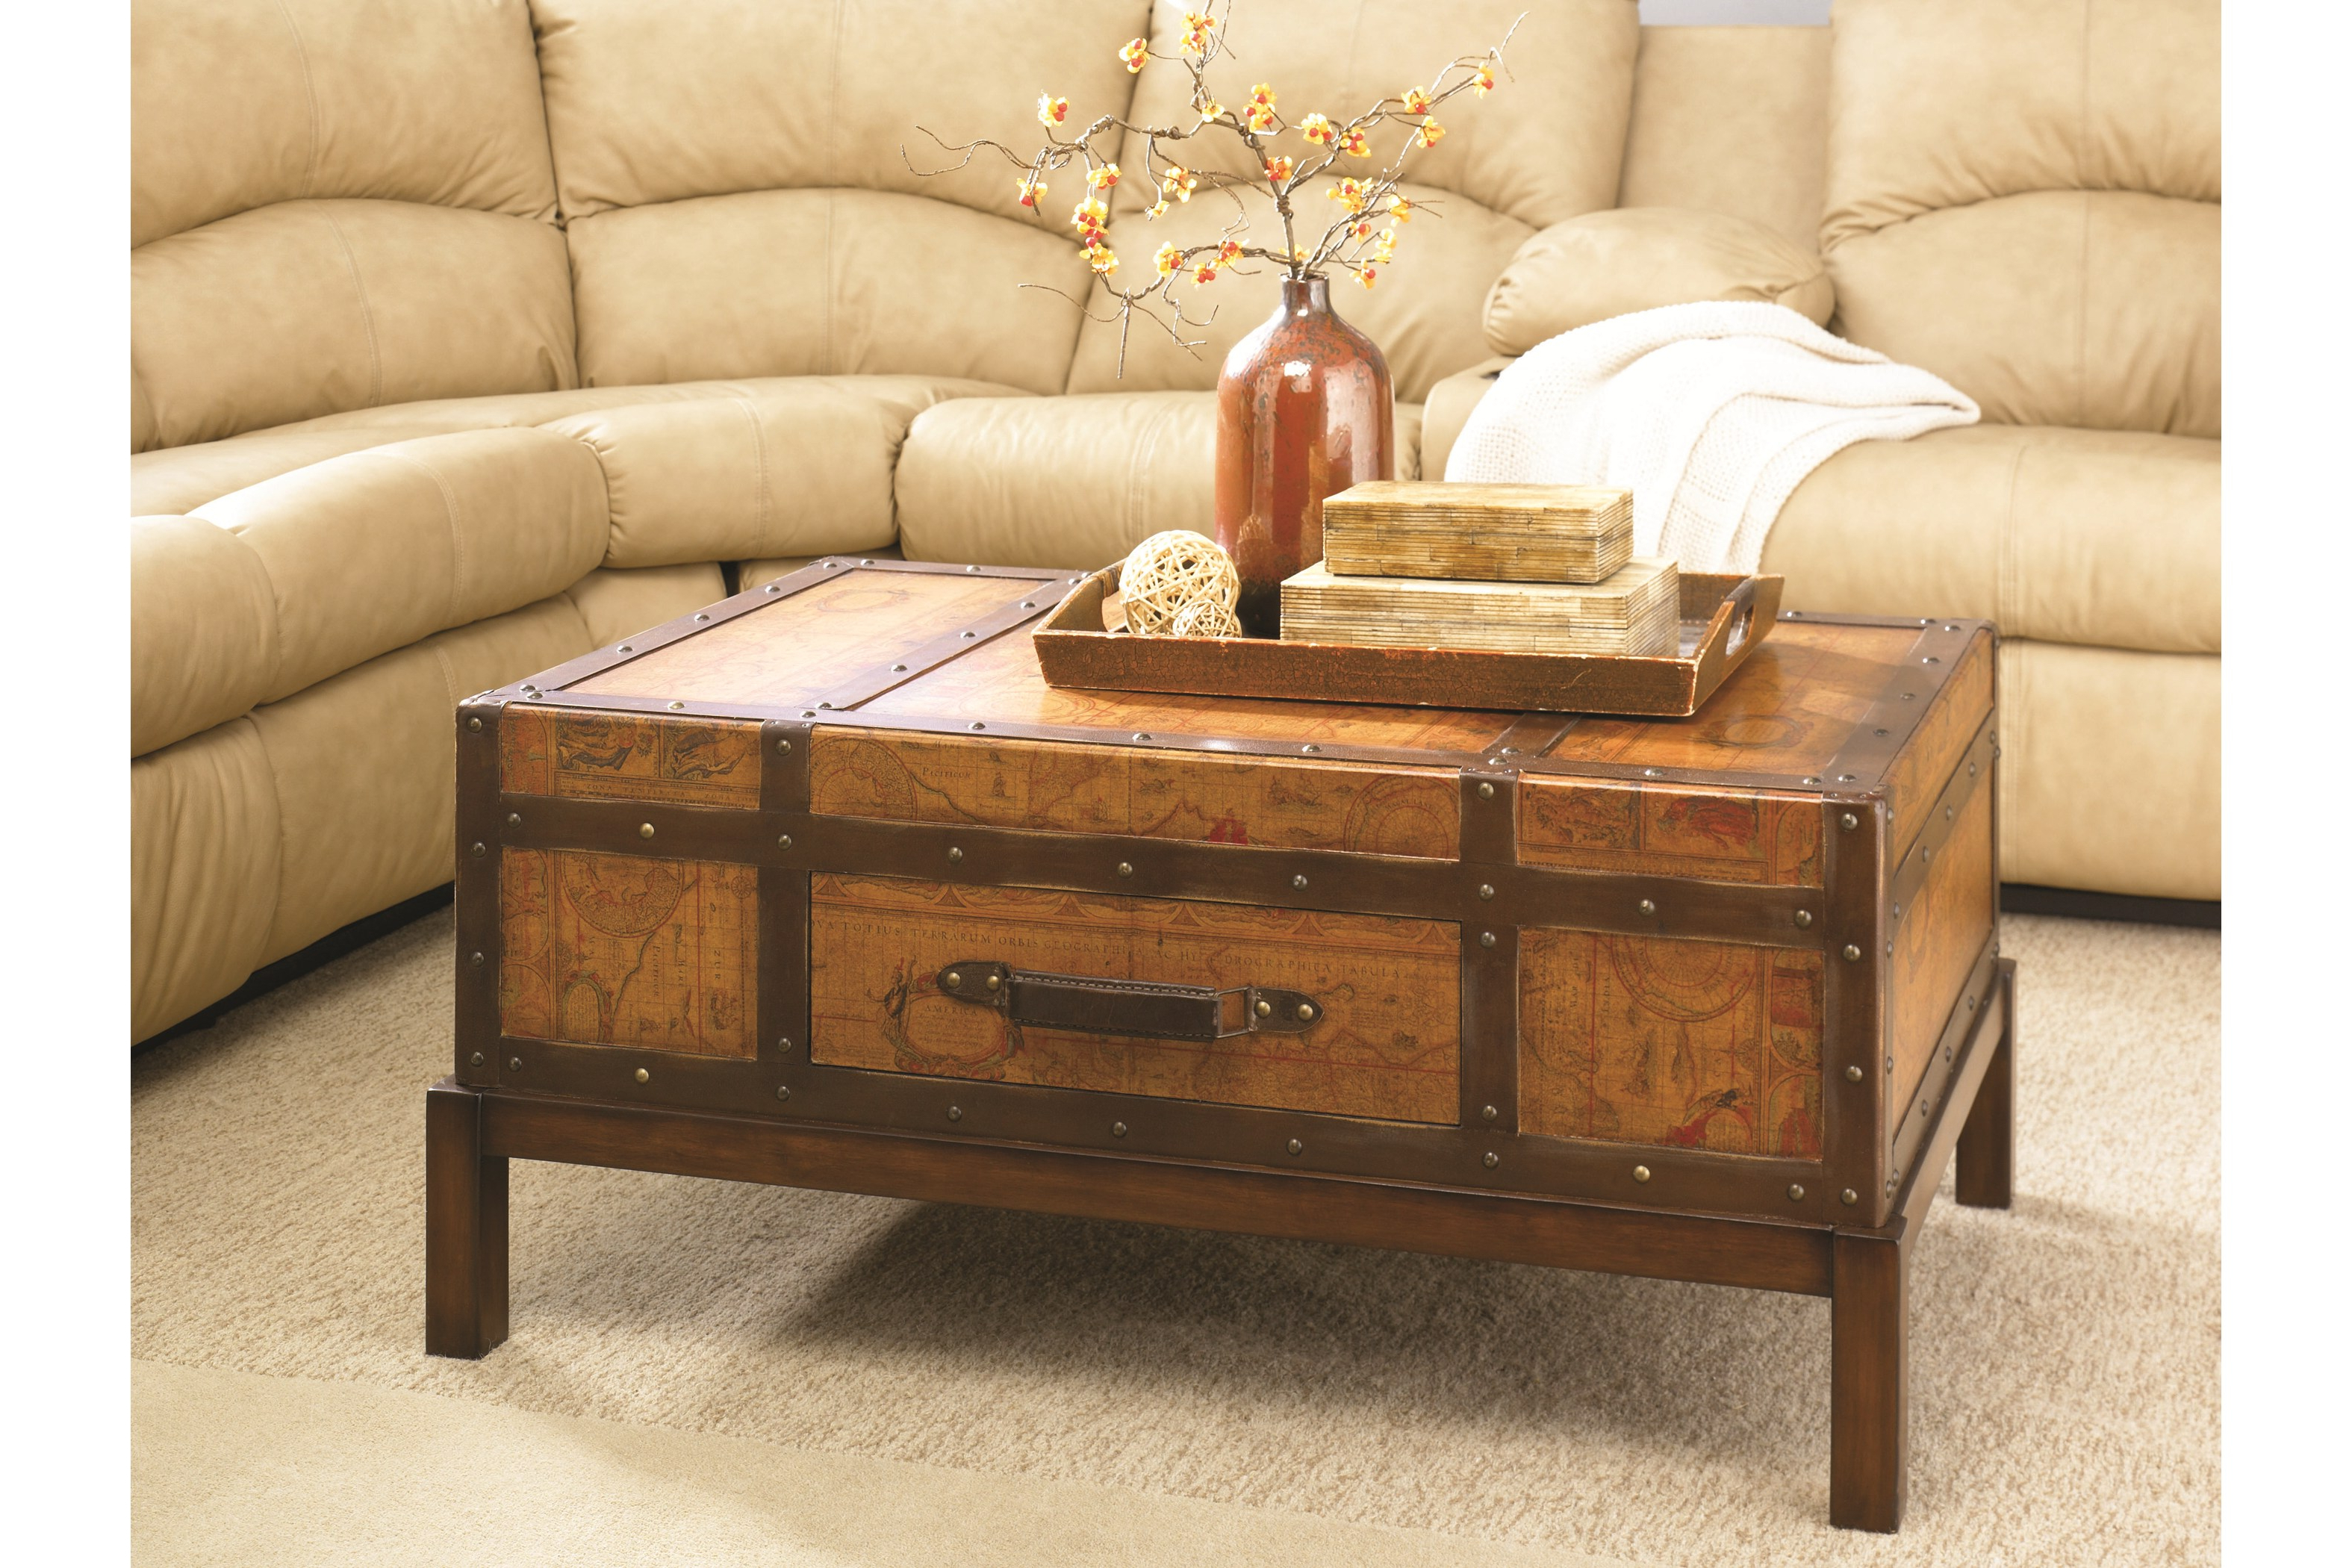 2019 Extra Sliced Log Coffee Table Walmart On Ottoman And Elegant Wood Inside Sliced Trunk Coffee Tables (Gallery 8 of 20)